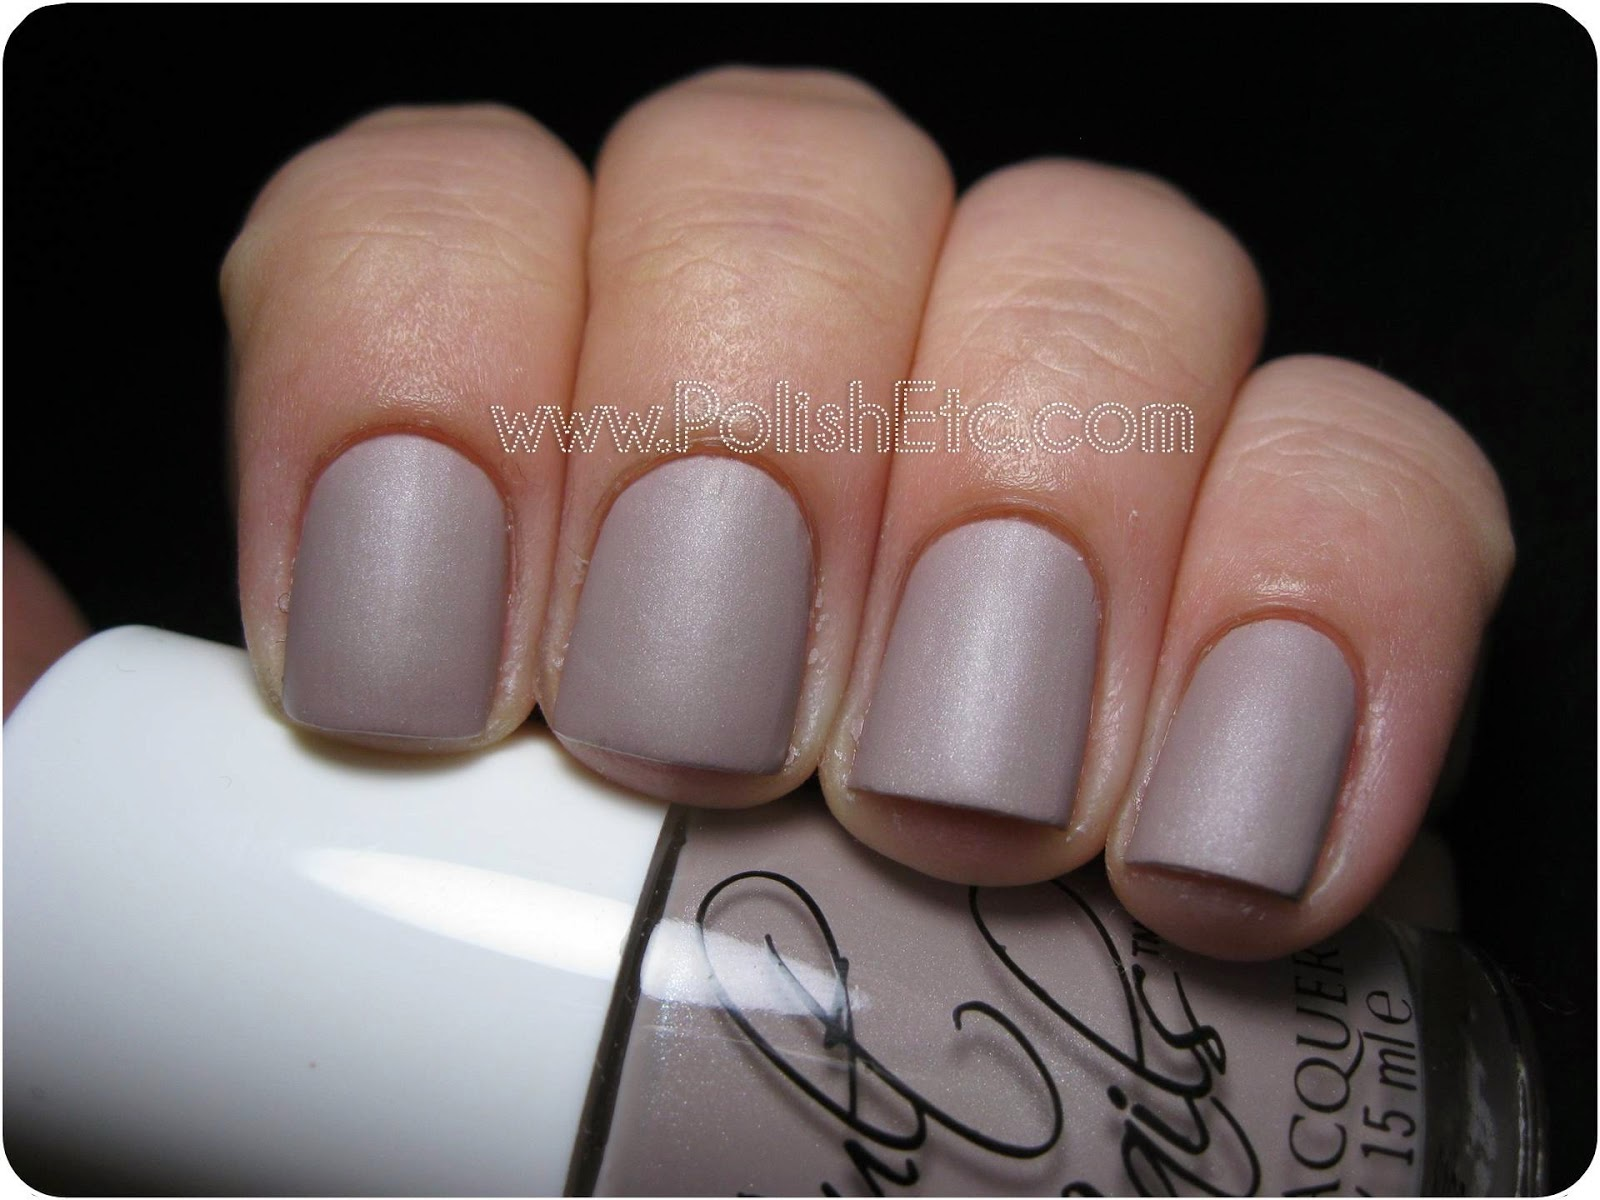 FASHION FOR TEEN: How to Get Healthy Looking Nails